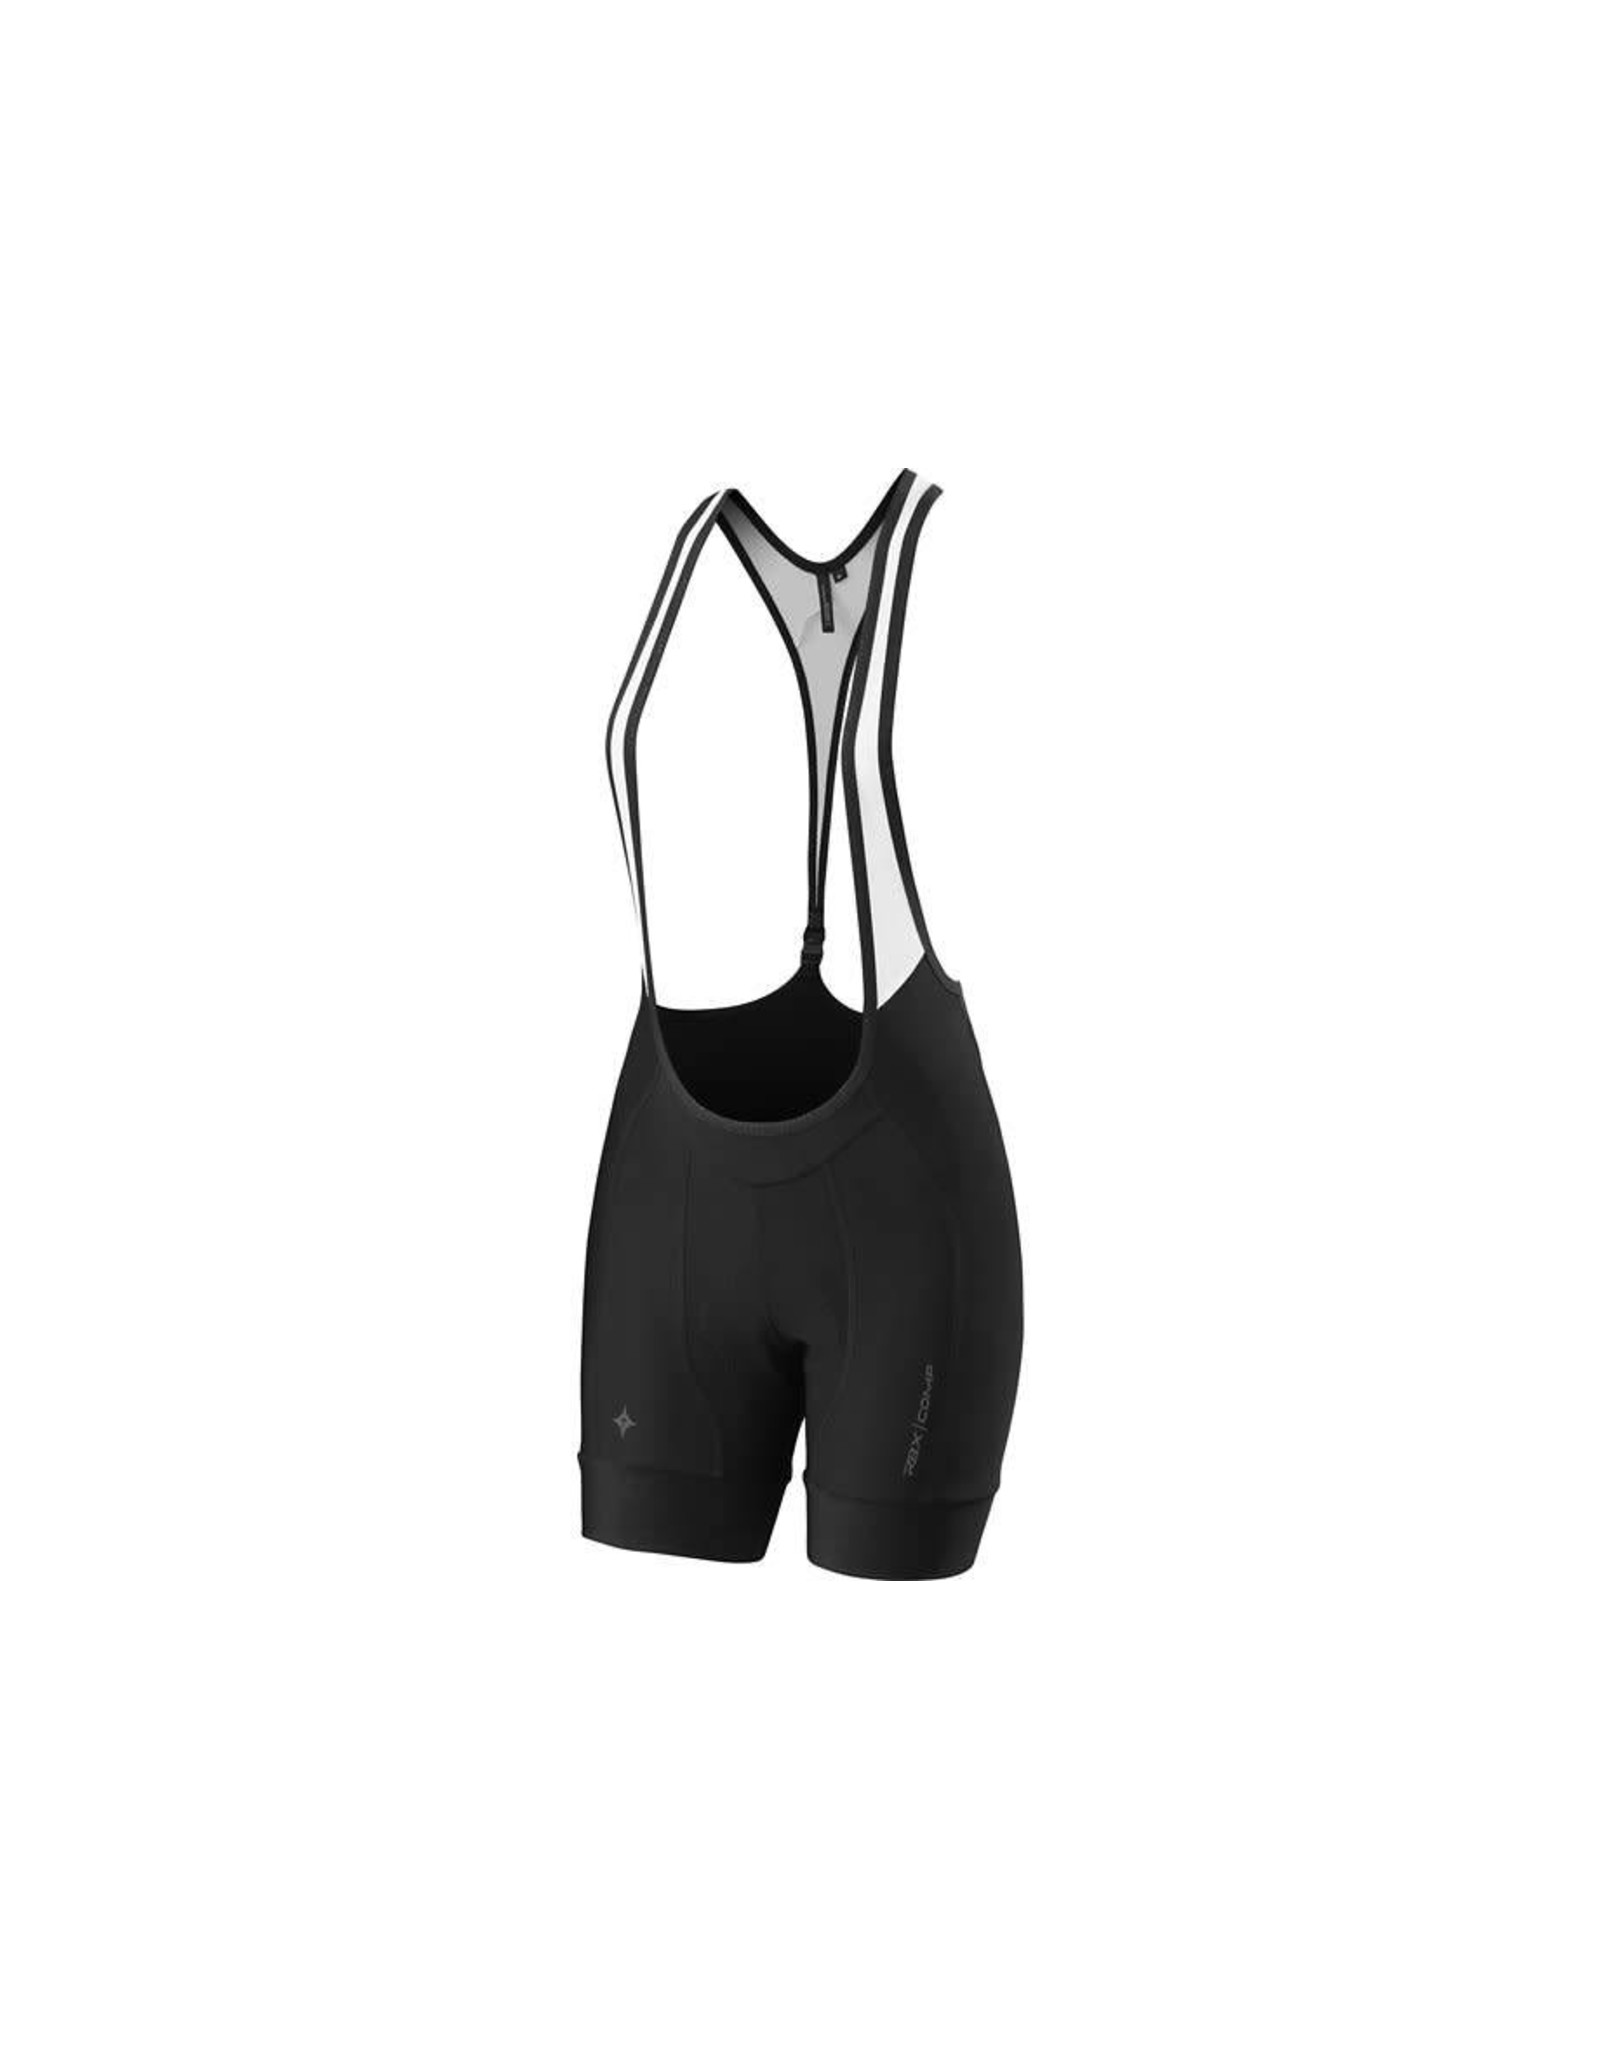 SPECIALIZED Specialized Women's RBX Comp Bib Short - Black - X-Small